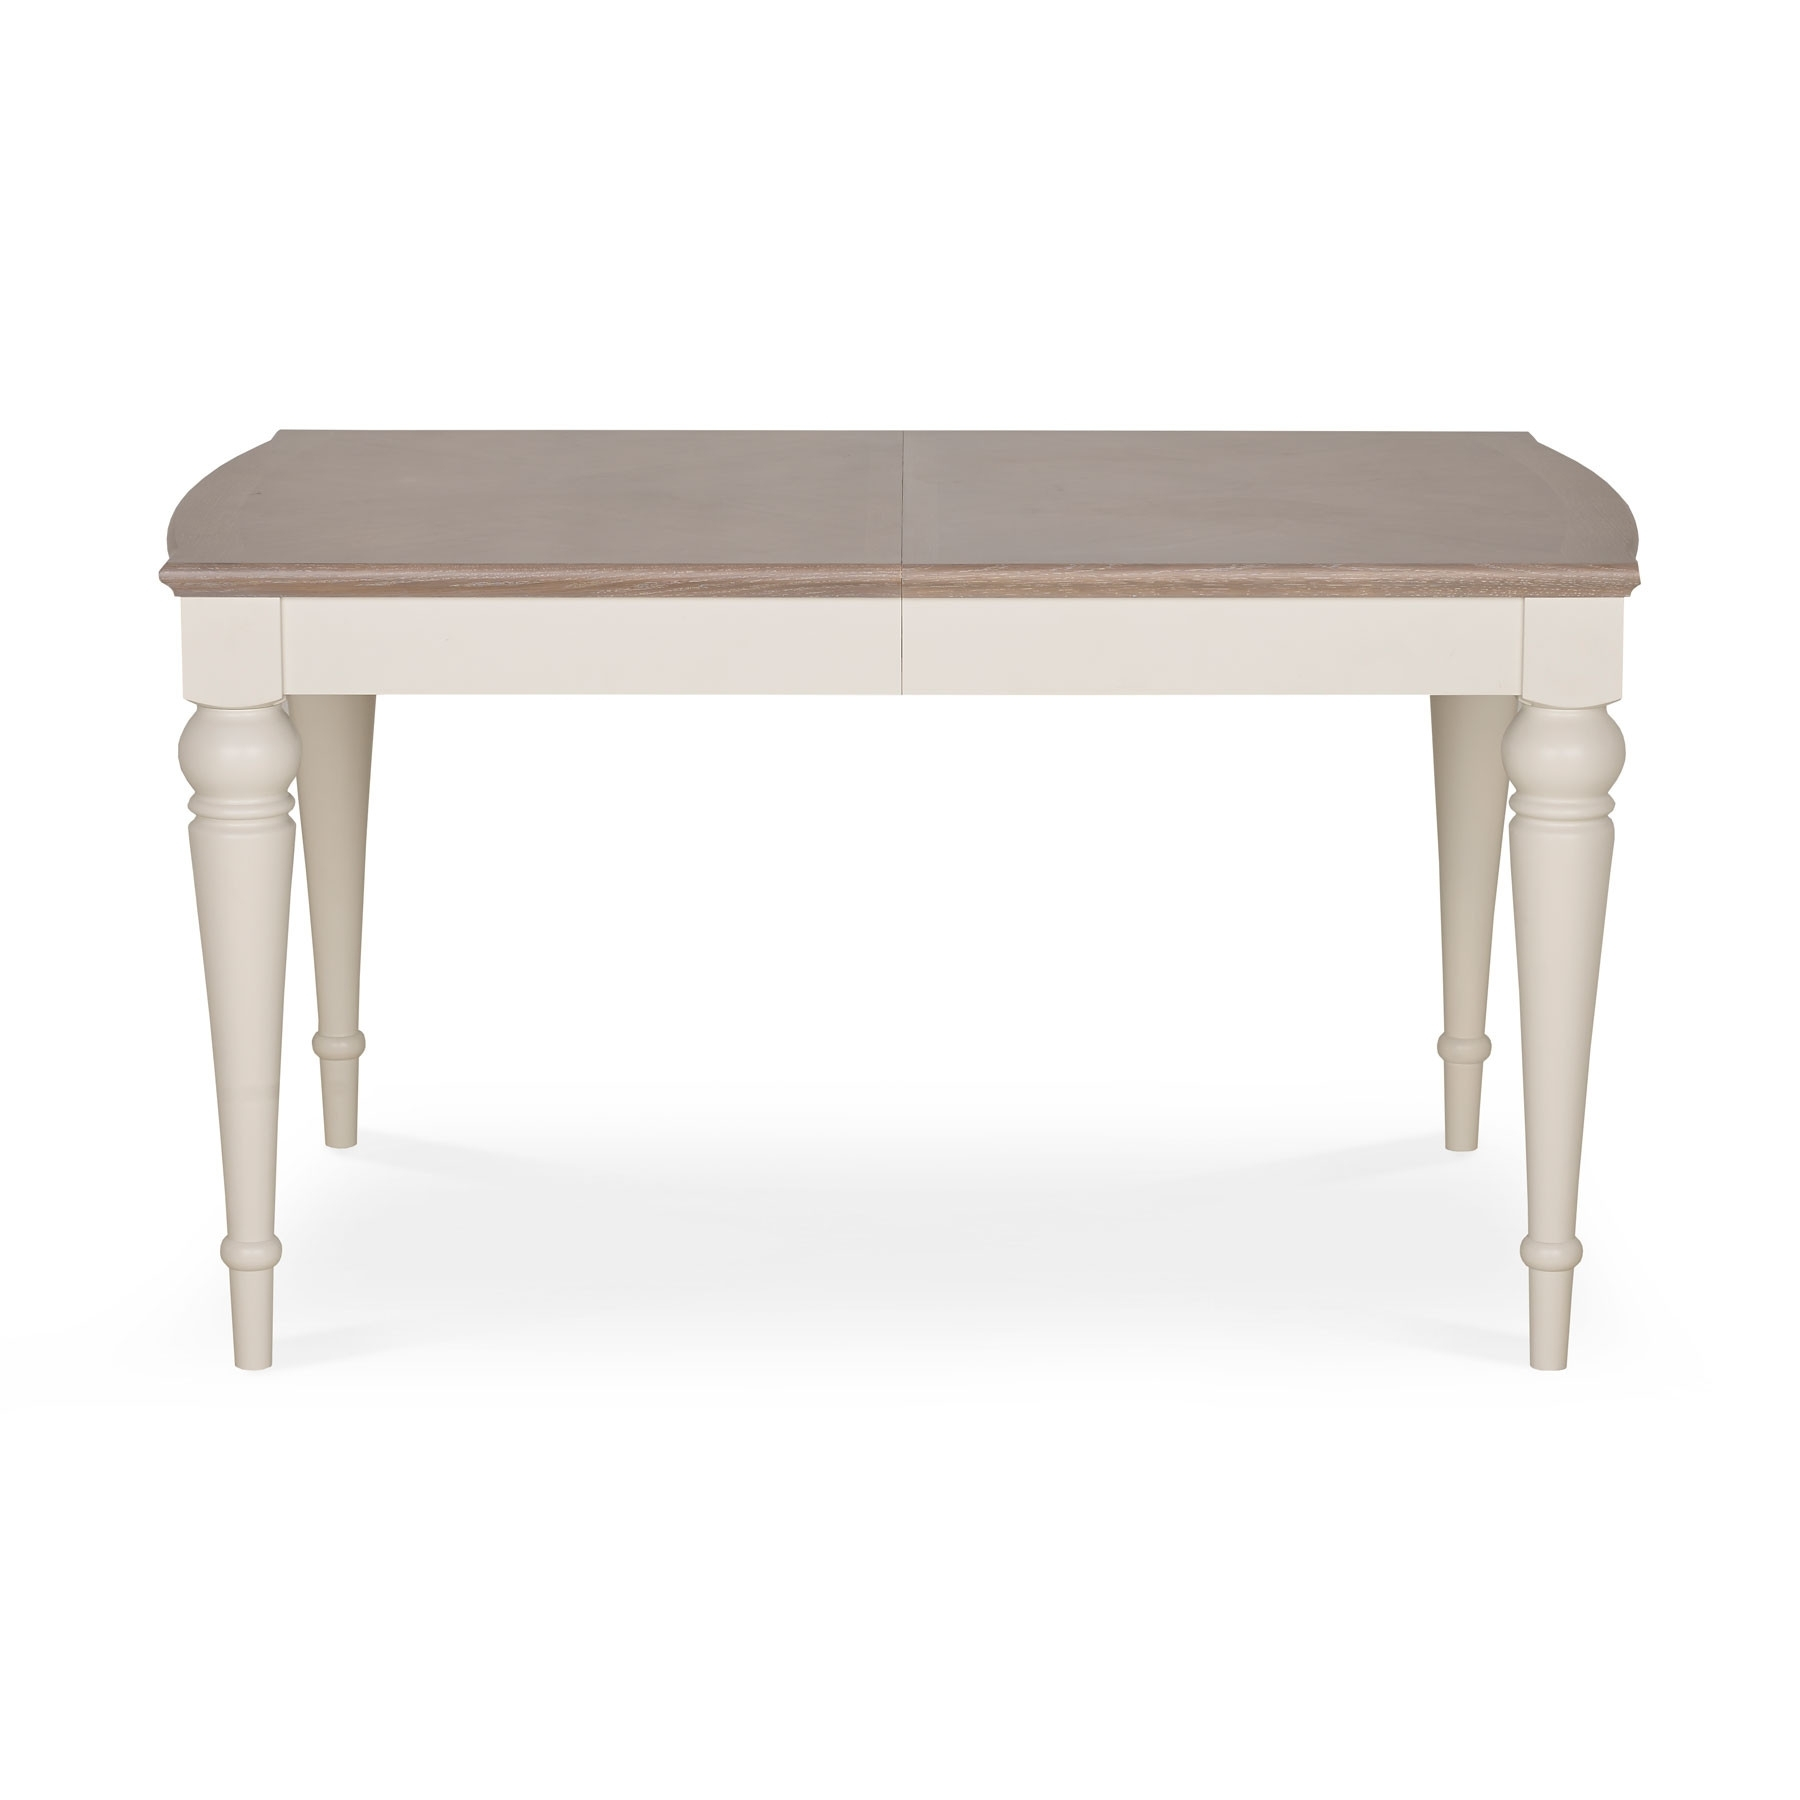 Hampton Grey Wash Oak Small Extending Dining Table Inside Fashionable Small Extending Dining Tables And Chairs (View 14 of 25)